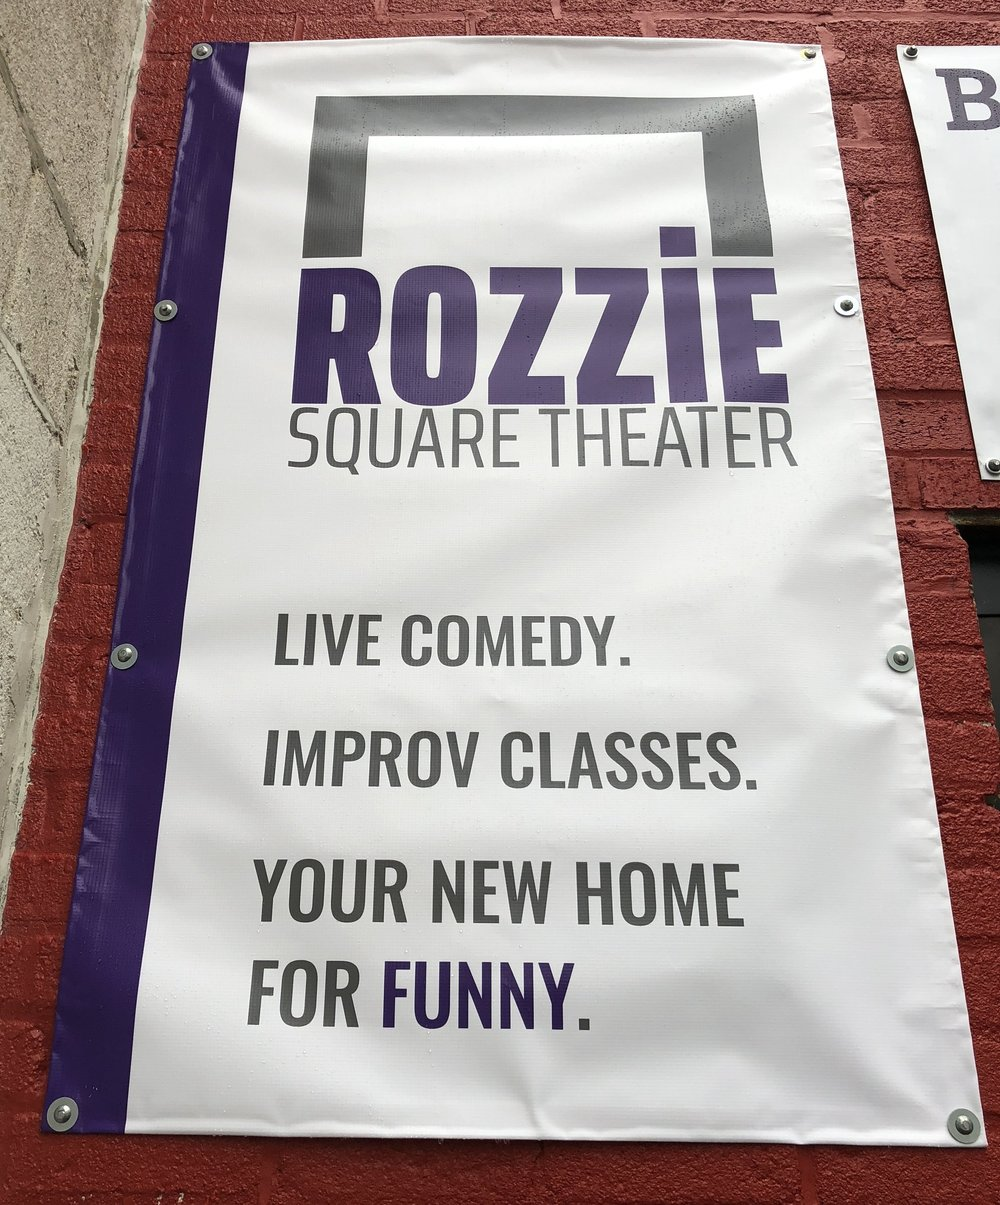 Our New Home - The Rozzie Square TheaterRight in the heart of lovely Roslindale Village.5 Basile st.,  Roslindale, MA 02131Our theater and seating is handicap accessible; Bathrooms are ADA compliant.